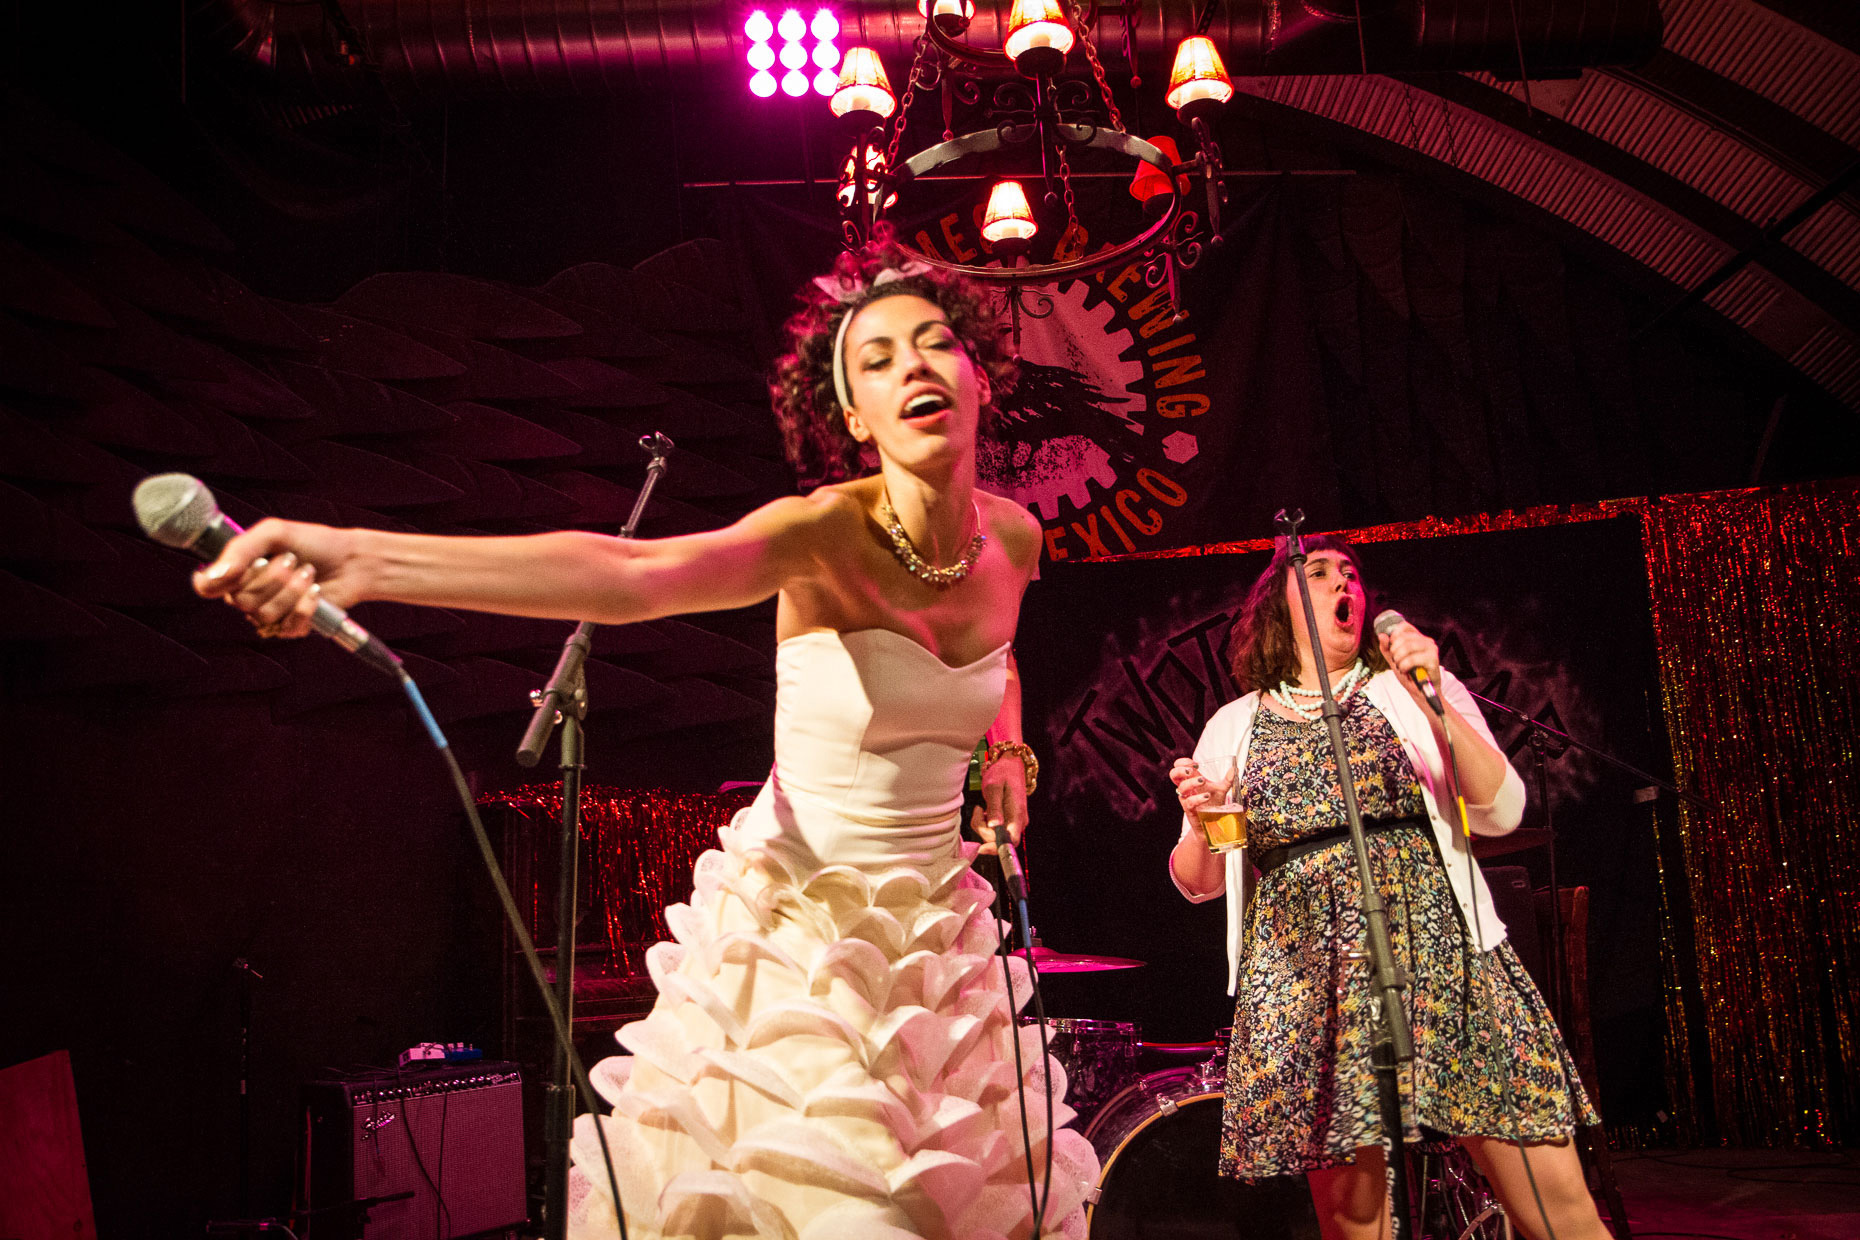 Taos Mesa Brewery wedding reception, bride sings heavy metal on stage